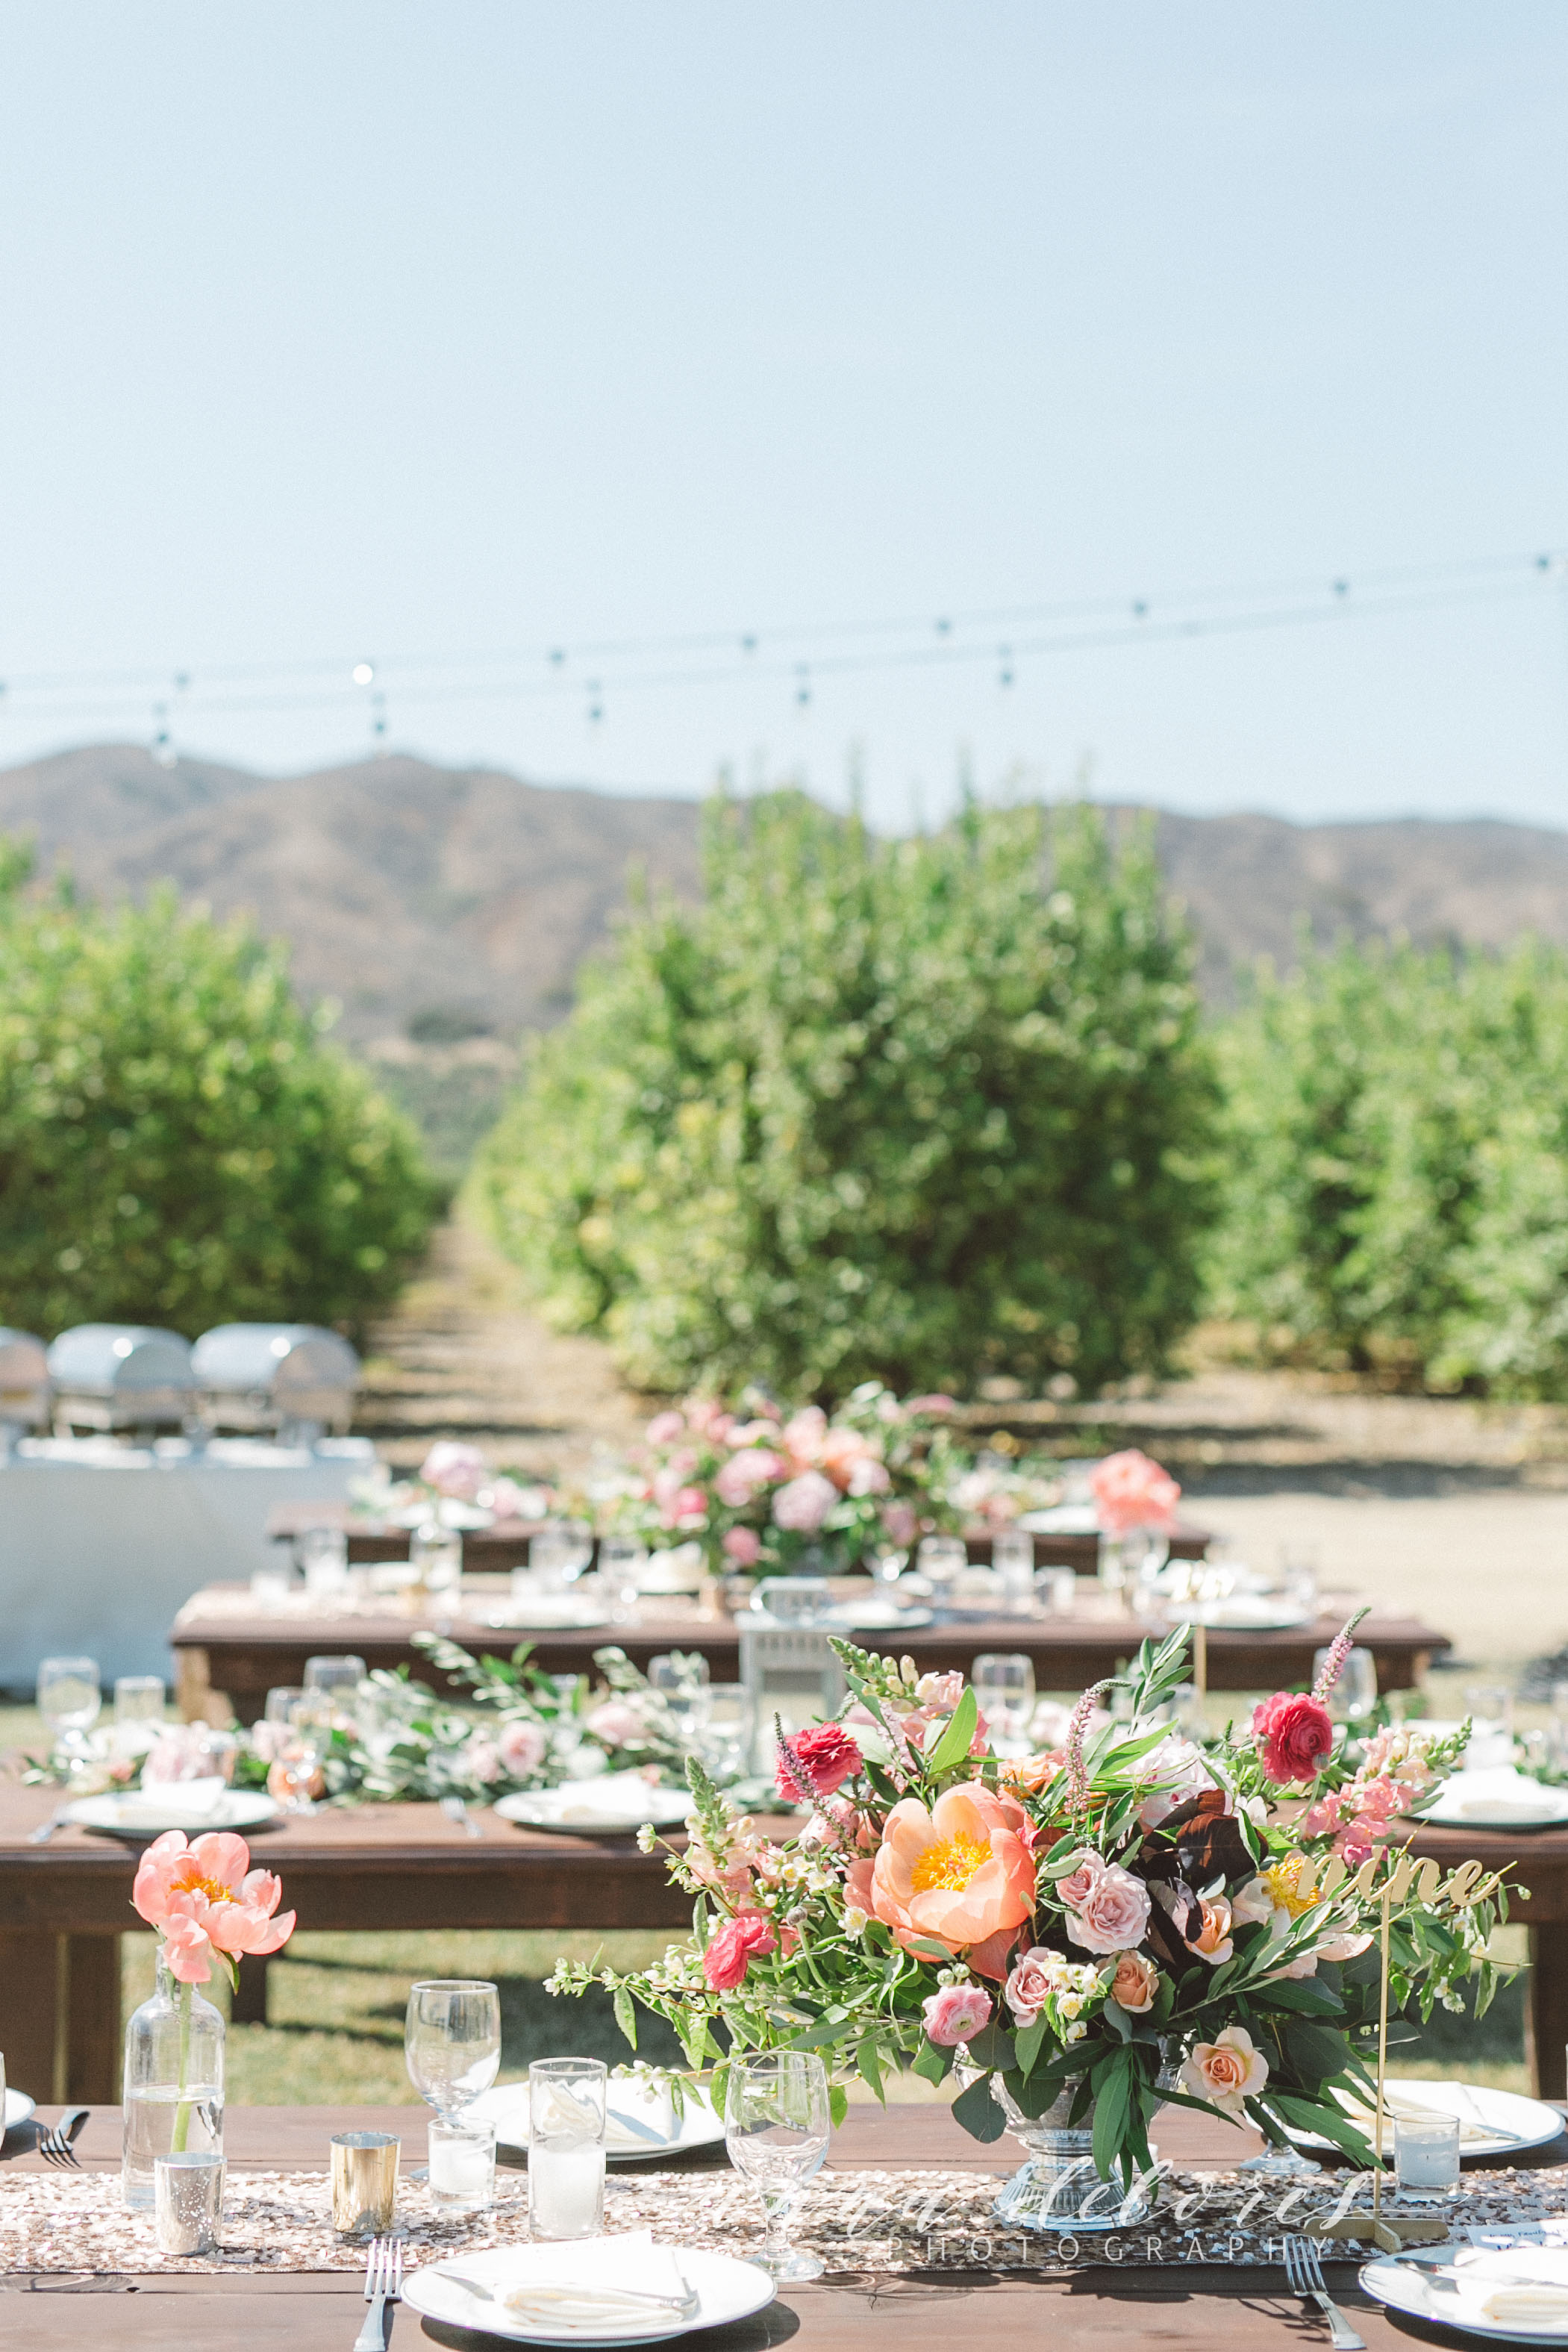 Anna Delores Photography_Casey & Chad at Limoneira 06.20.15-20-2.jpg